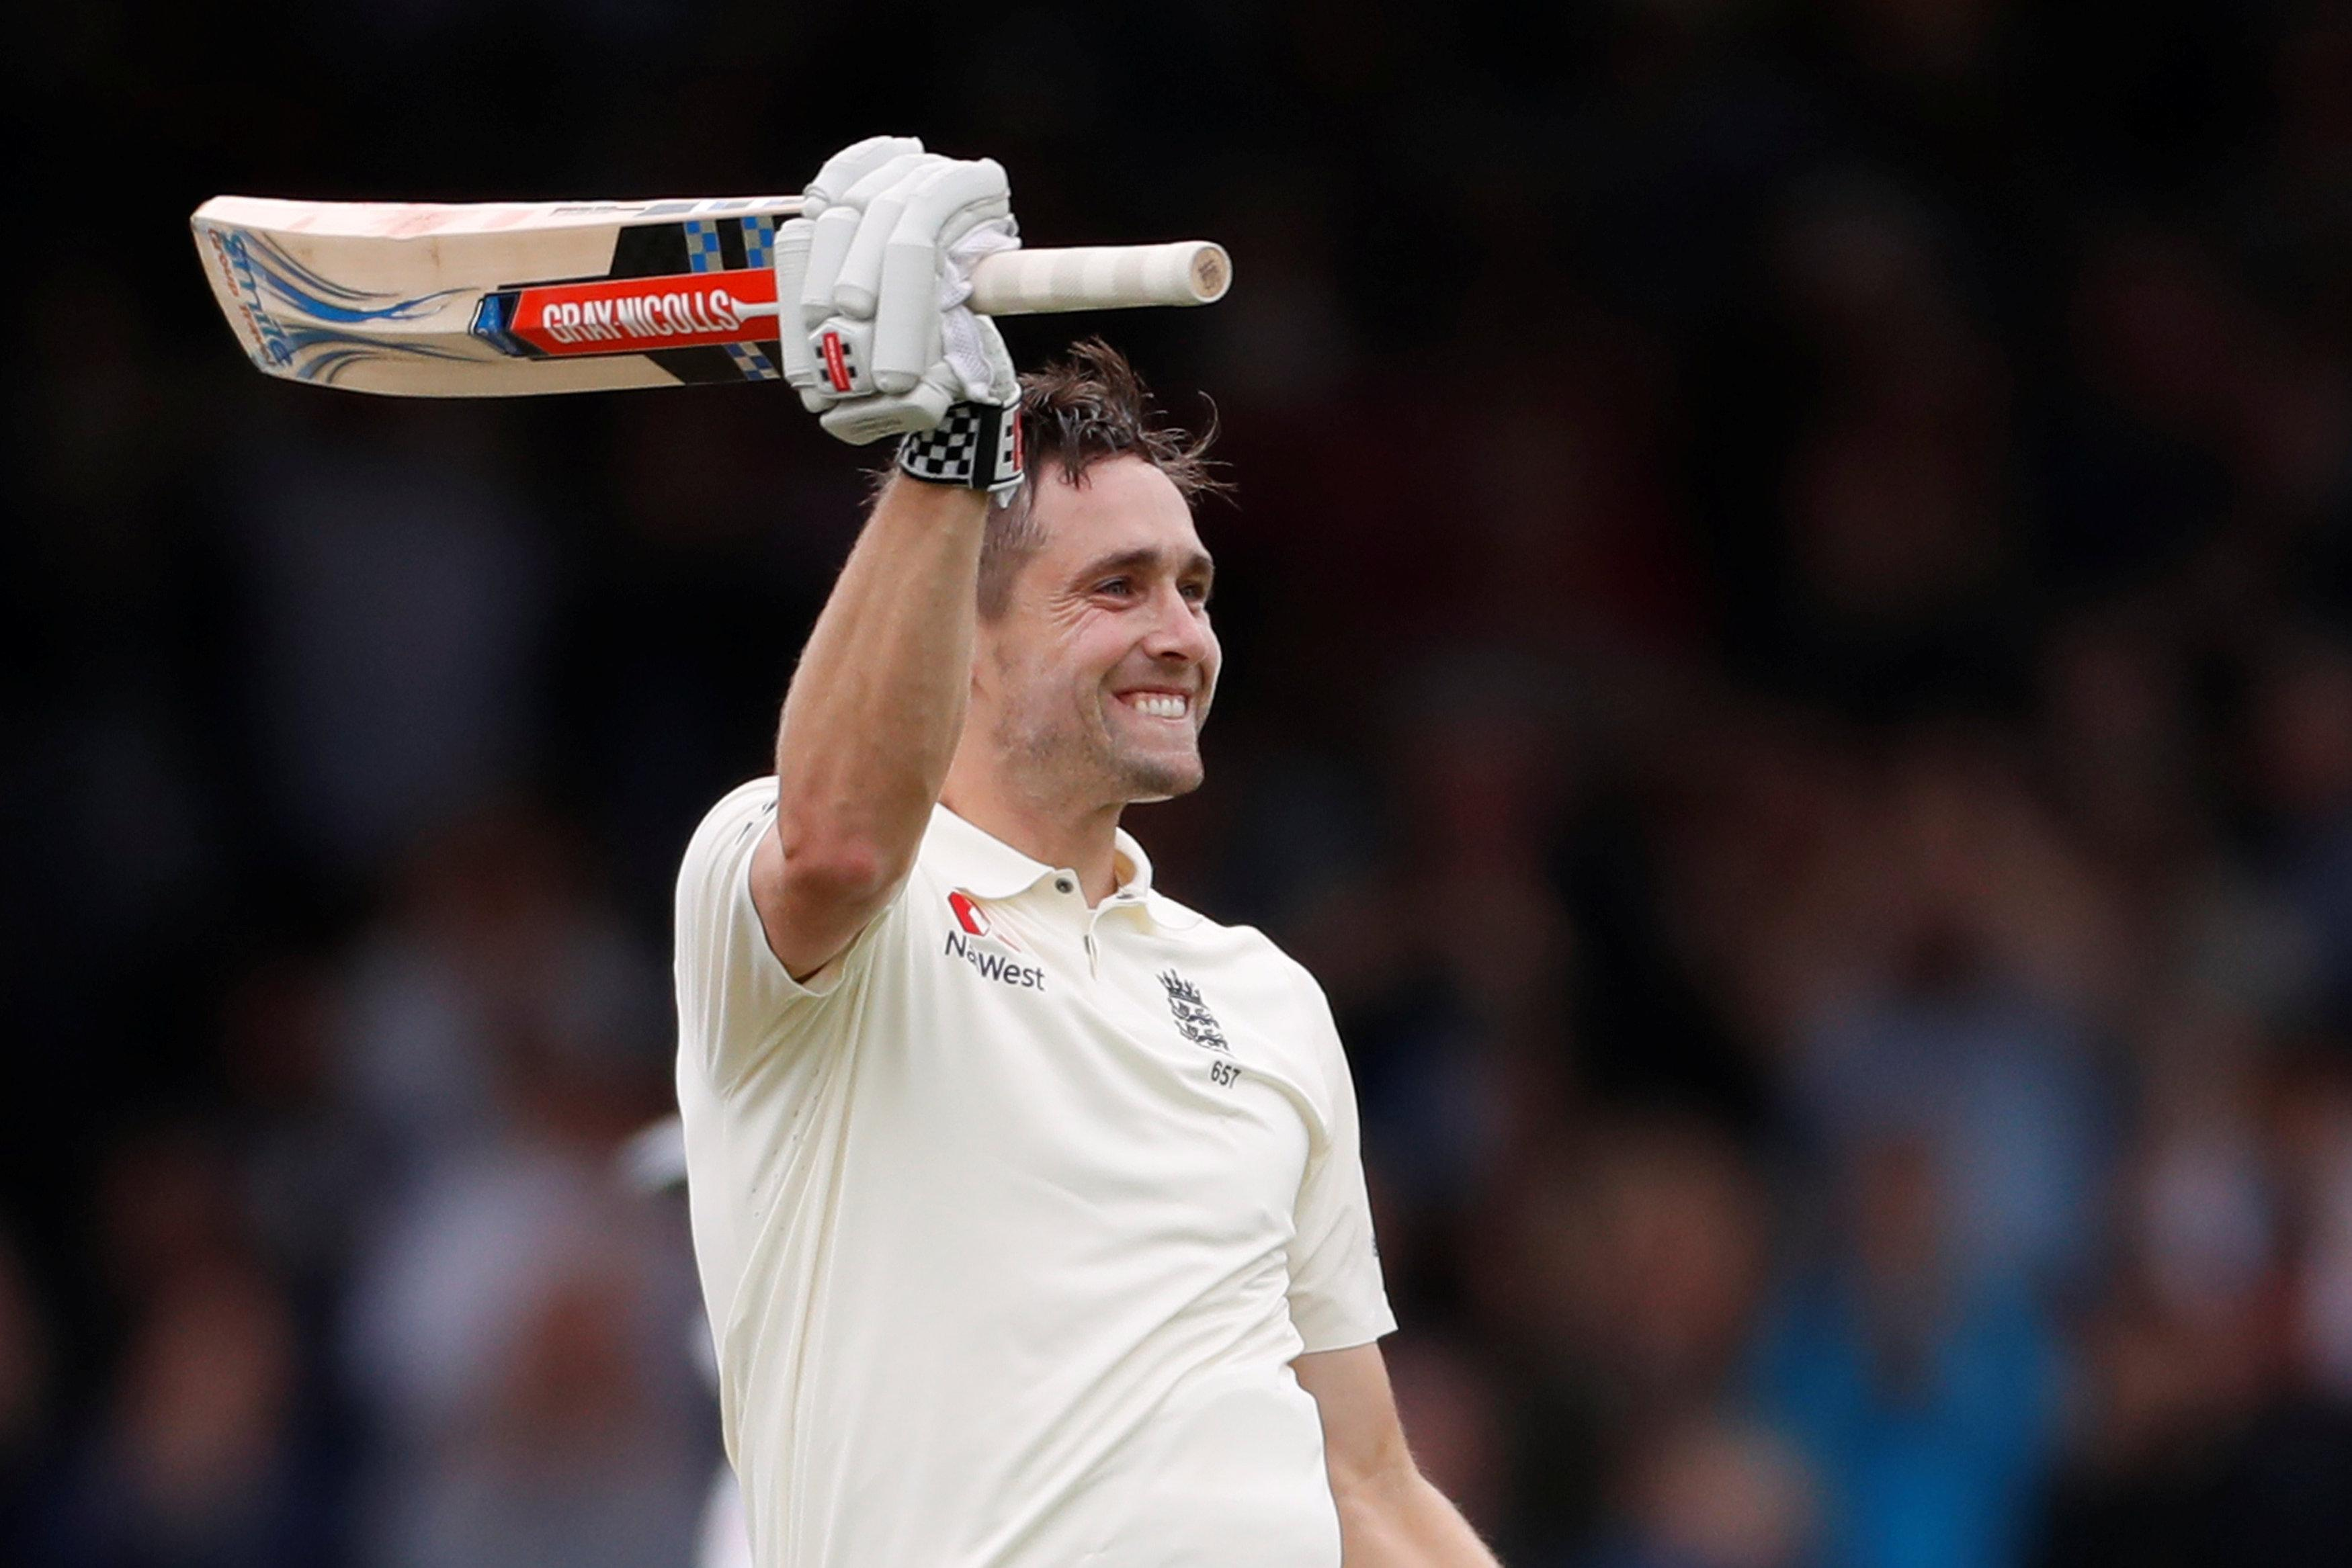 John Taylor had just listened in to Chris Woakes cracking his maiden Test century, against India, before losing his battle with life